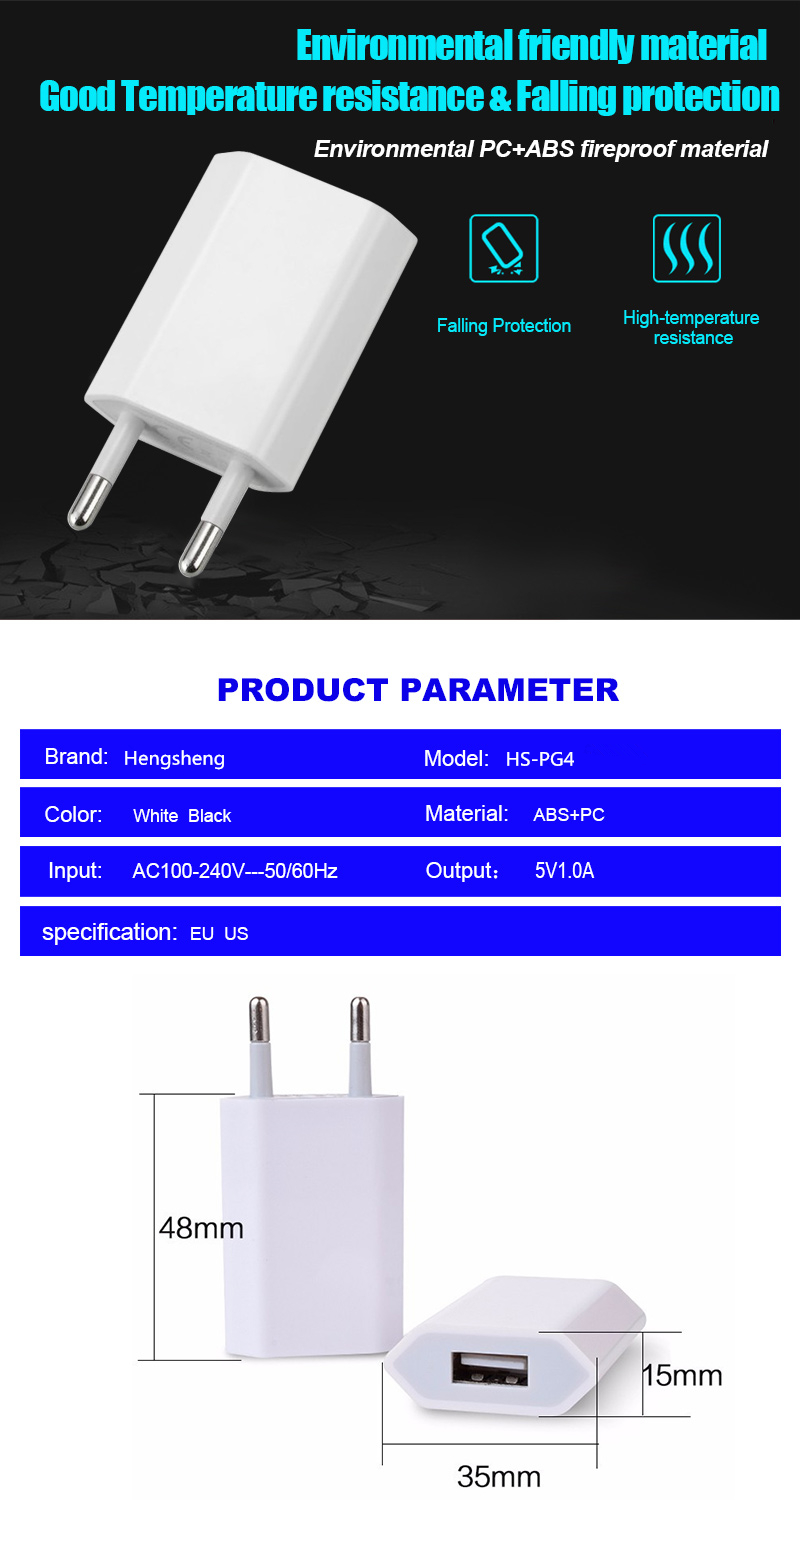 Hot selling products travel 5v 1.0a charger adapter for mobile phone 5V 1A US/EU plug usb wall charger for iPhone charger